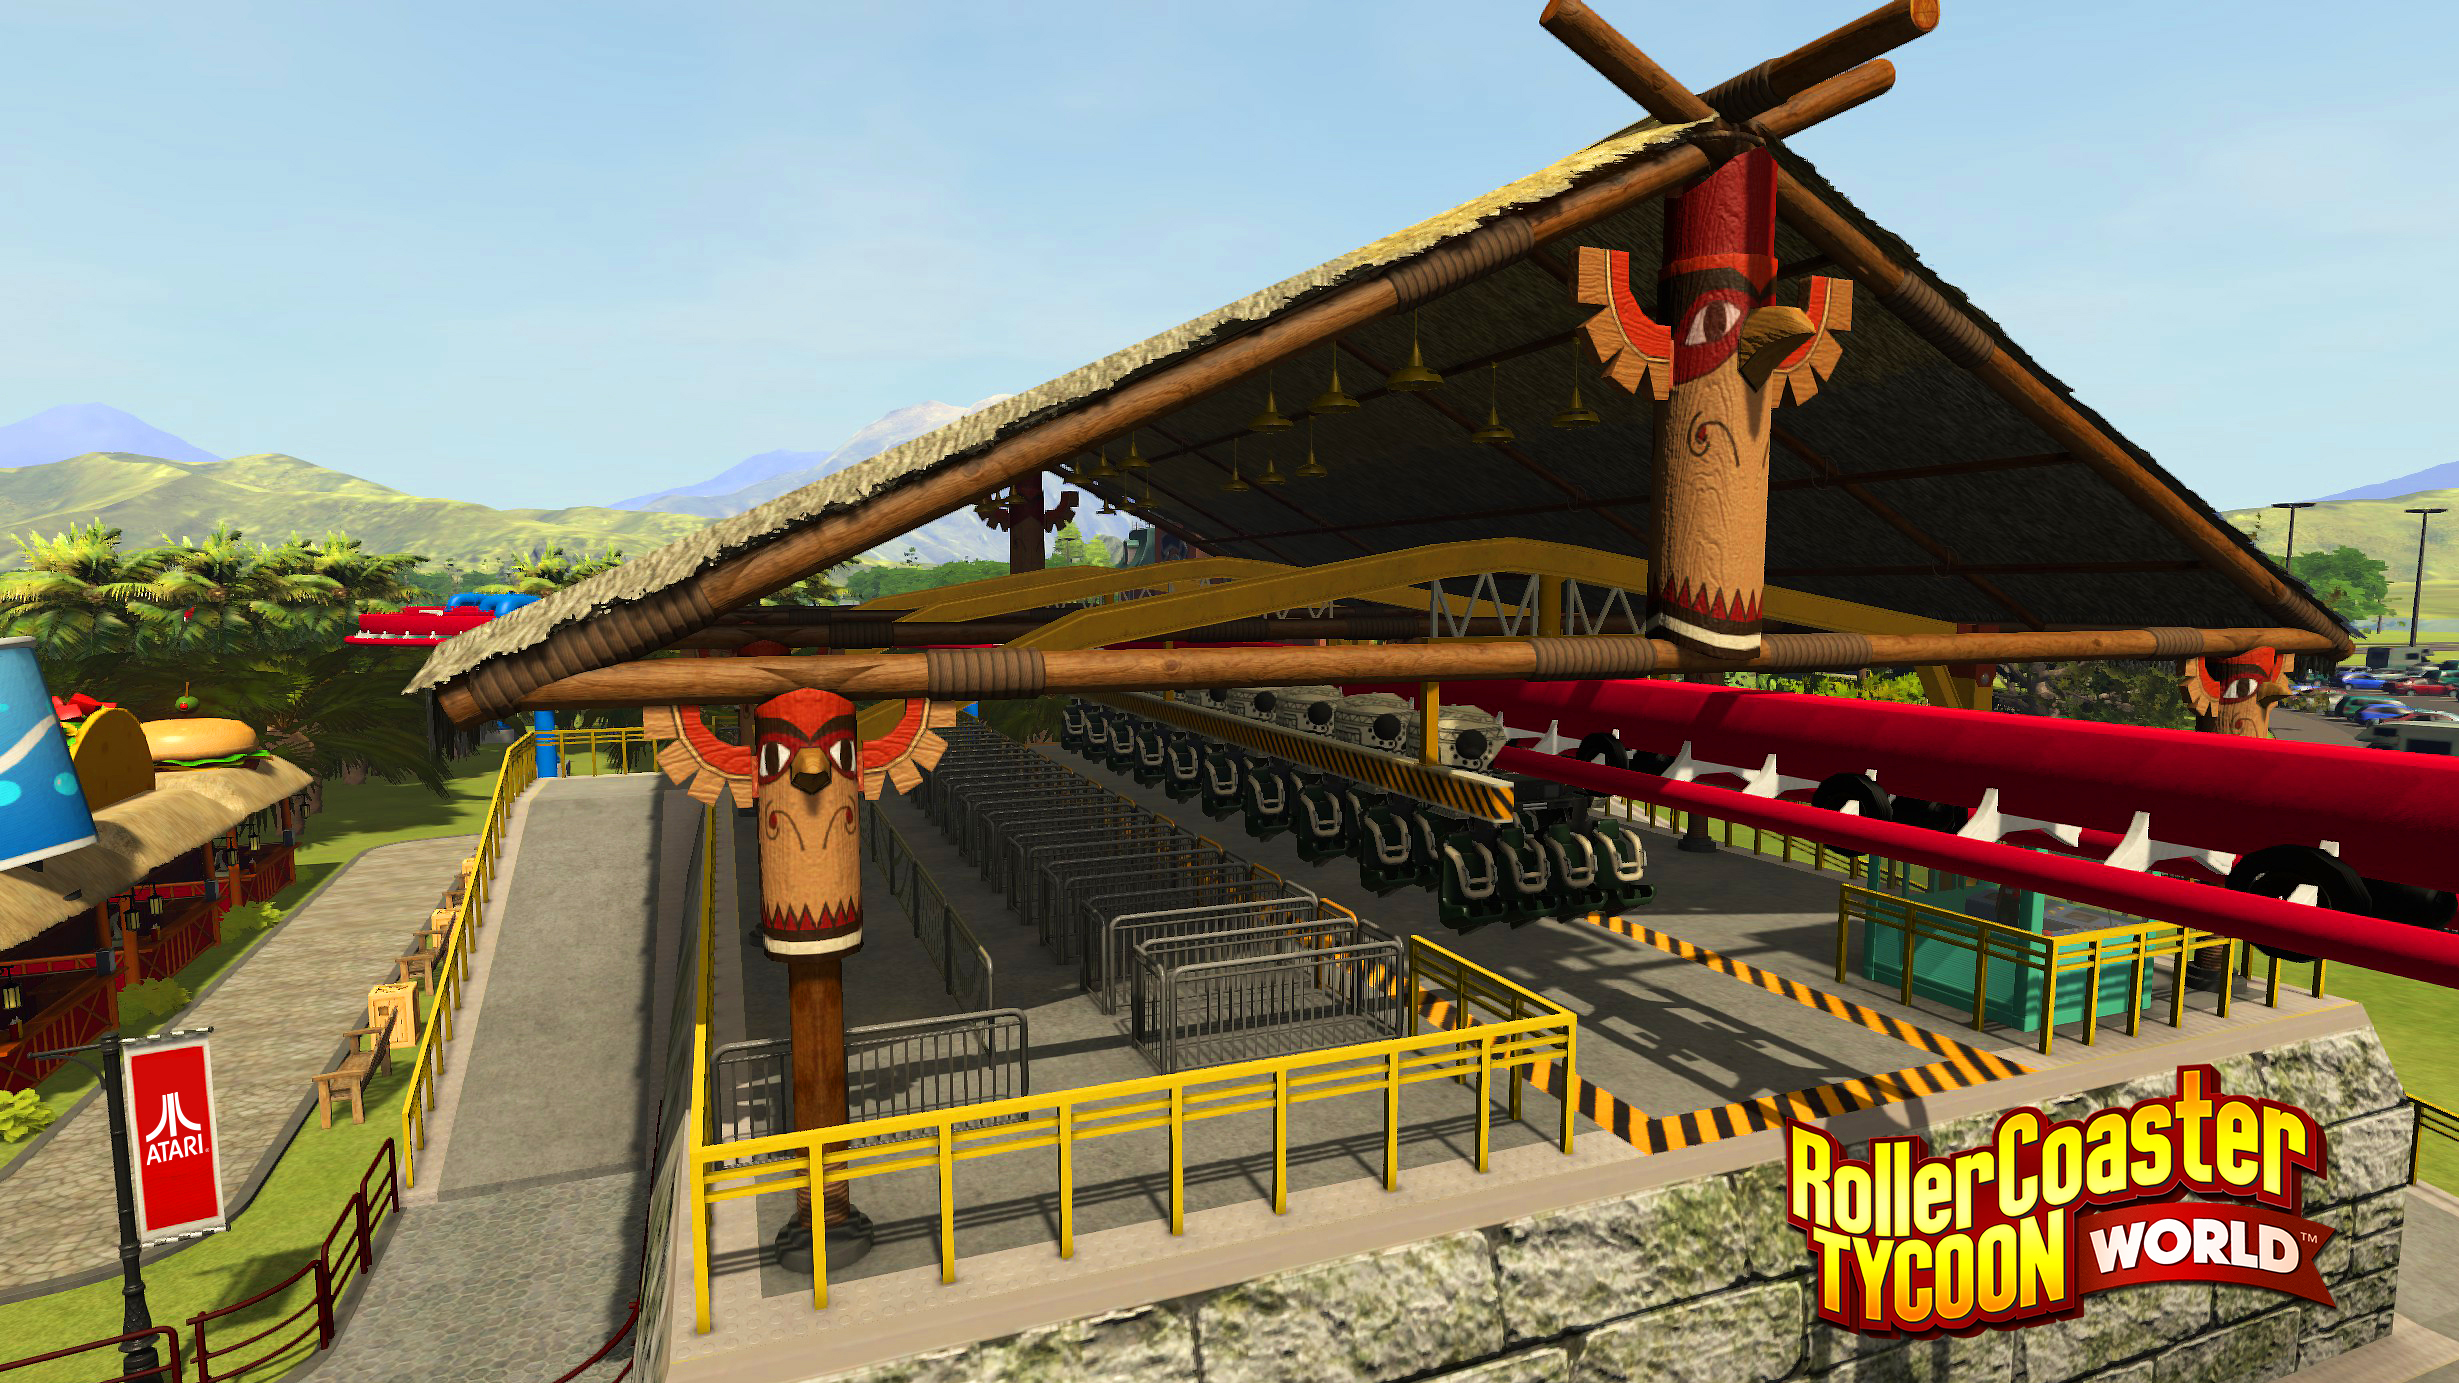 RCTW Suspended Coaster